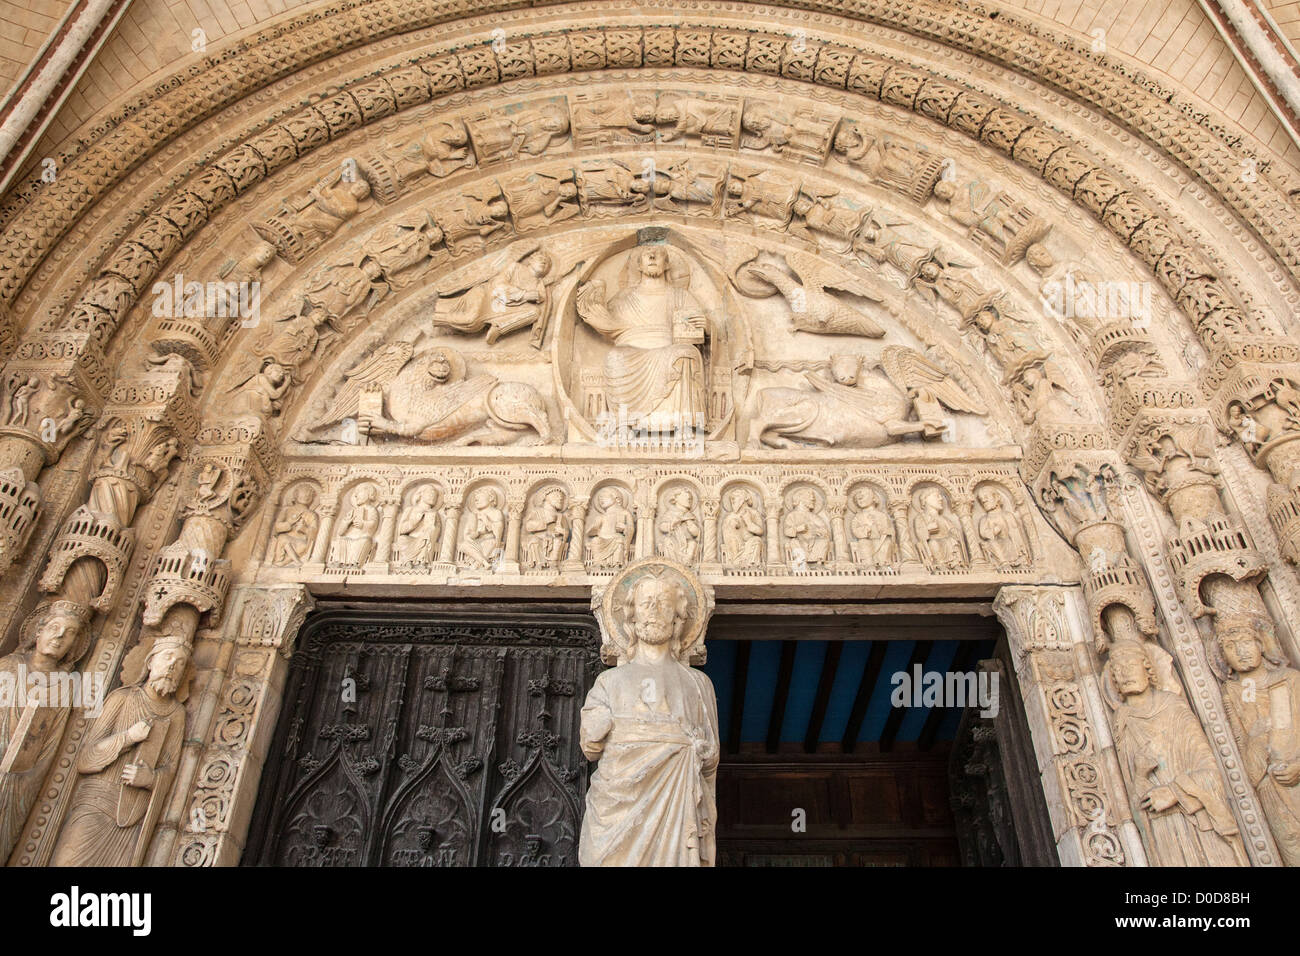 sculpture on south porch cathedral saint etienne in bourges gem stock photo royalty free image. Black Bedroom Furniture Sets. Home Design Ideas